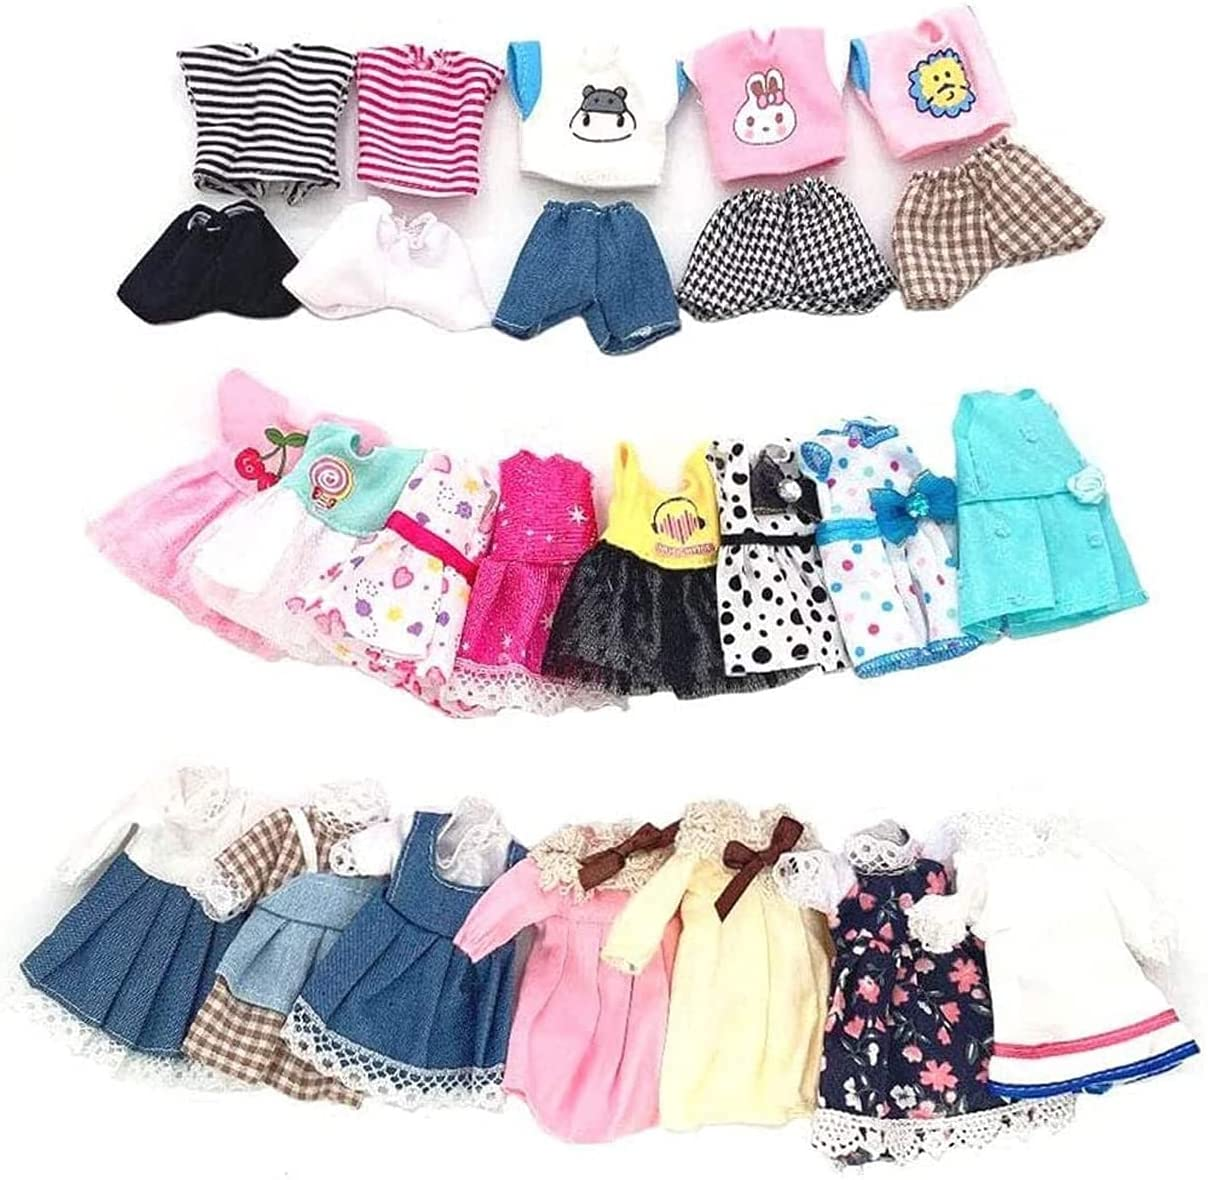 Lembani 20 Pcs lowest Credence price Set Adorable Doll Out Dress Party Casual Handmade